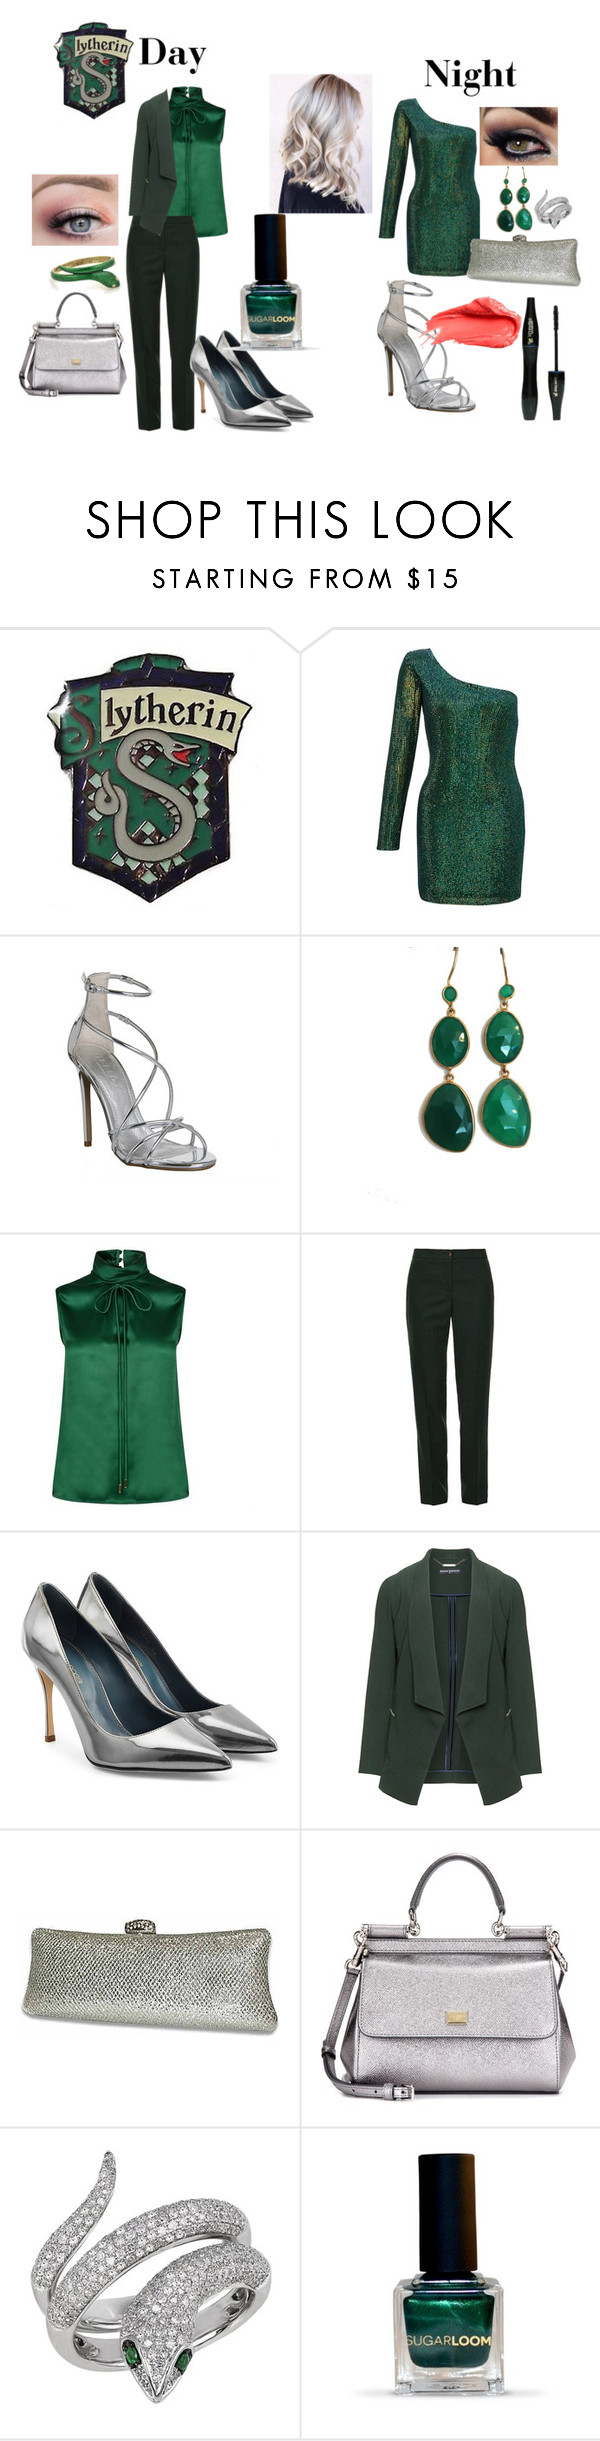 """Slytherin Style"" by nchavez113 on Polyvore featuring Ariella, Office, Lancôme, Blue Candy Jewelry, Dsquared2, Tory Burch, Sergio Rossi, Urban Decay, Manon Baptiste and Dolce&Gabbana"